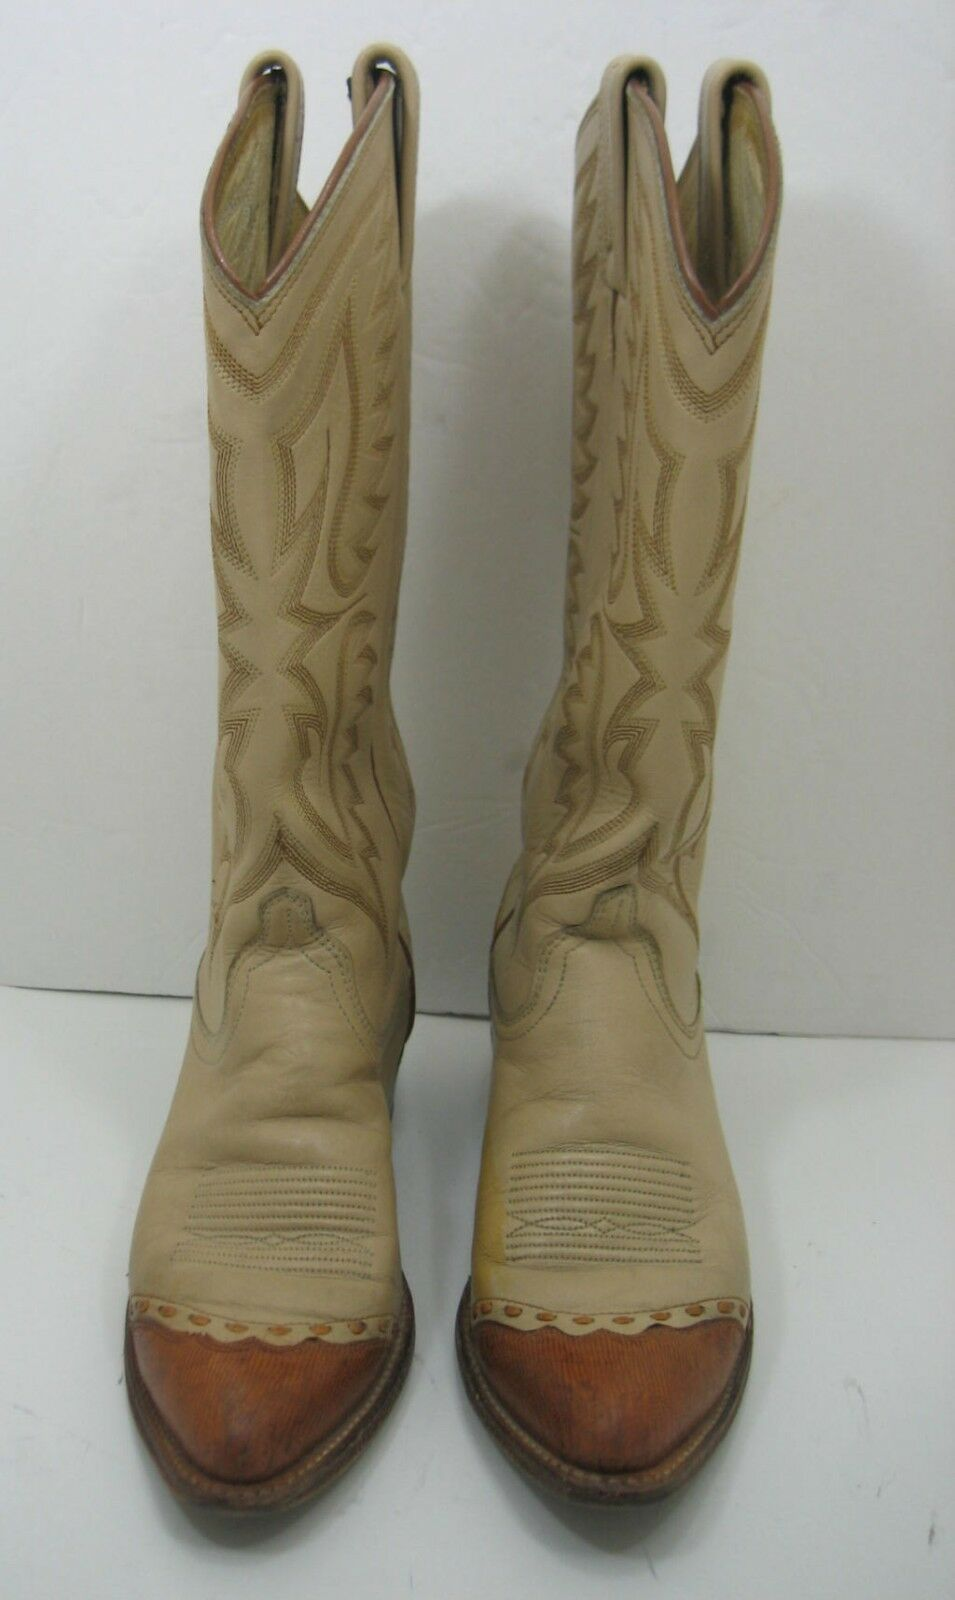 Nice Dan Post Light Tan Cowboy Boots with ReptileToe Caps Womens sz 6 M.